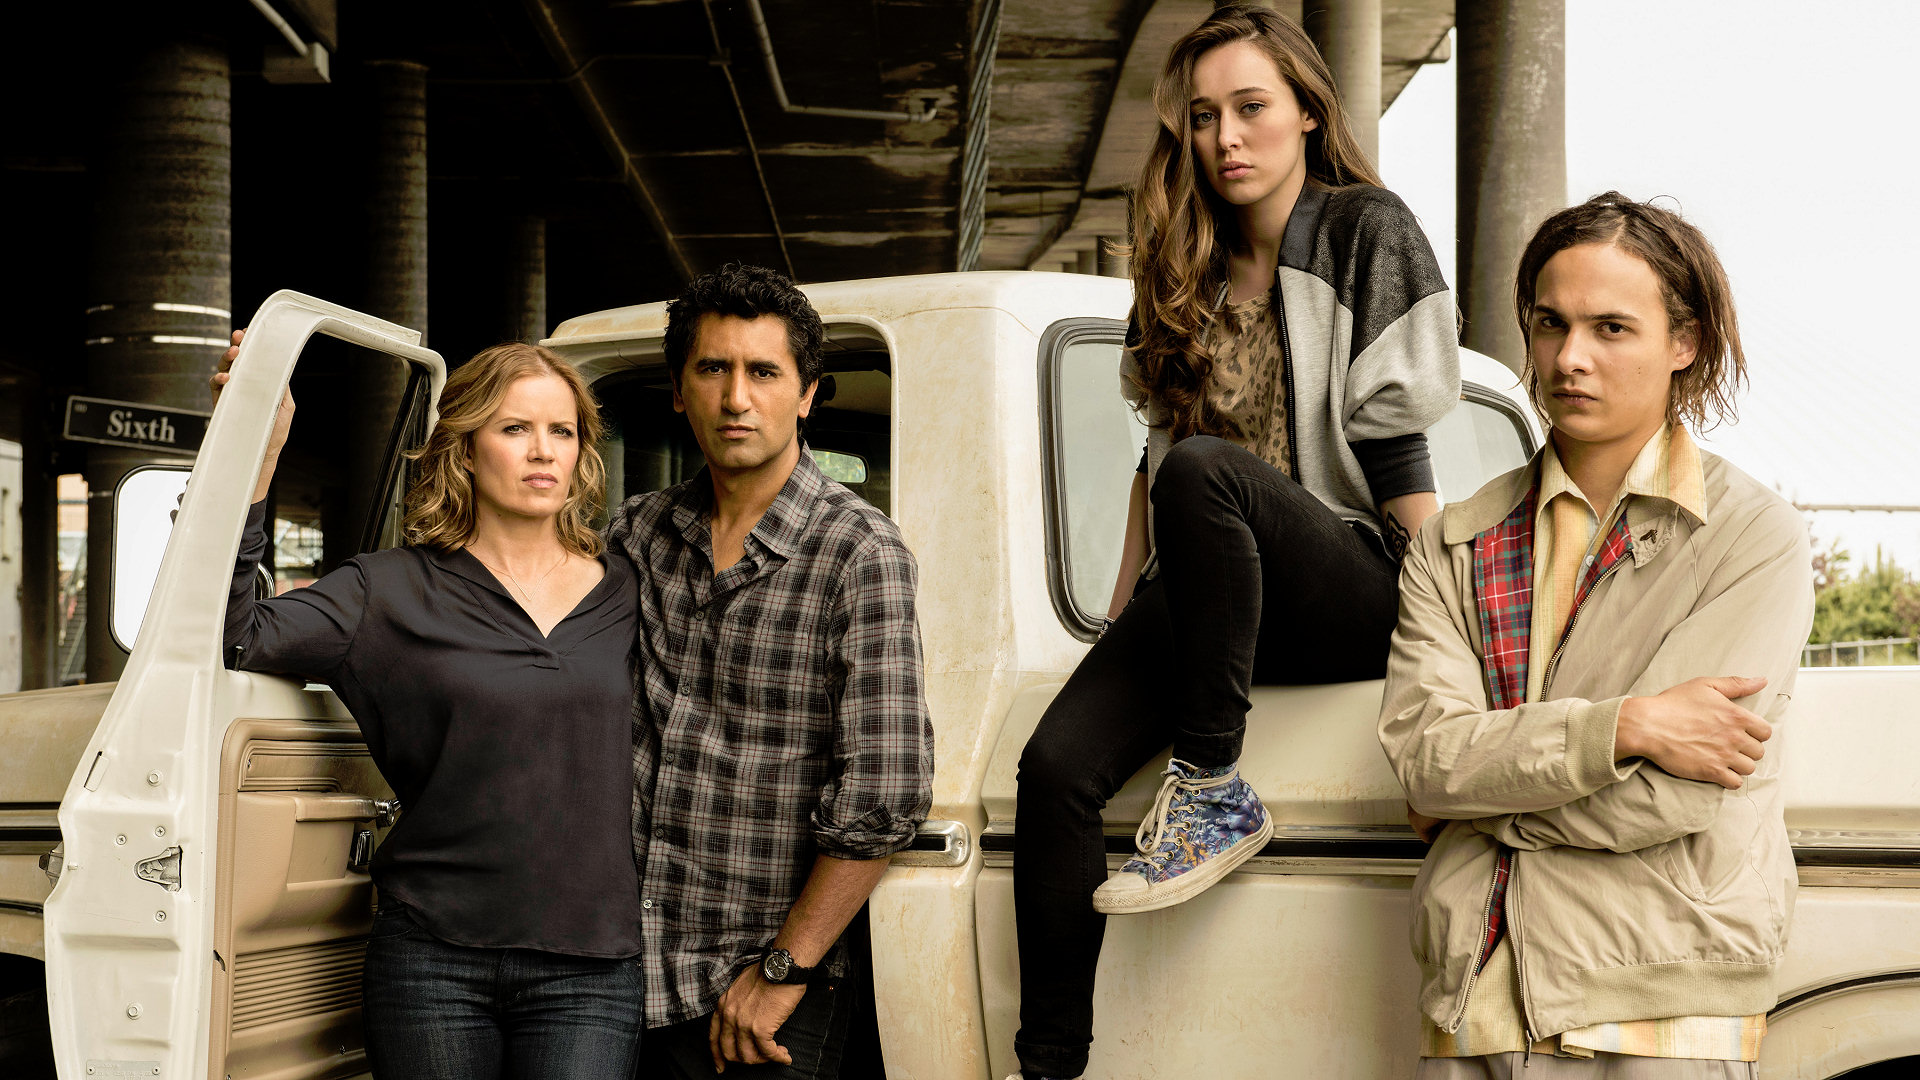 Fear The Walking Dead Season 2 Gets A Premiere Date | The Walking Dead